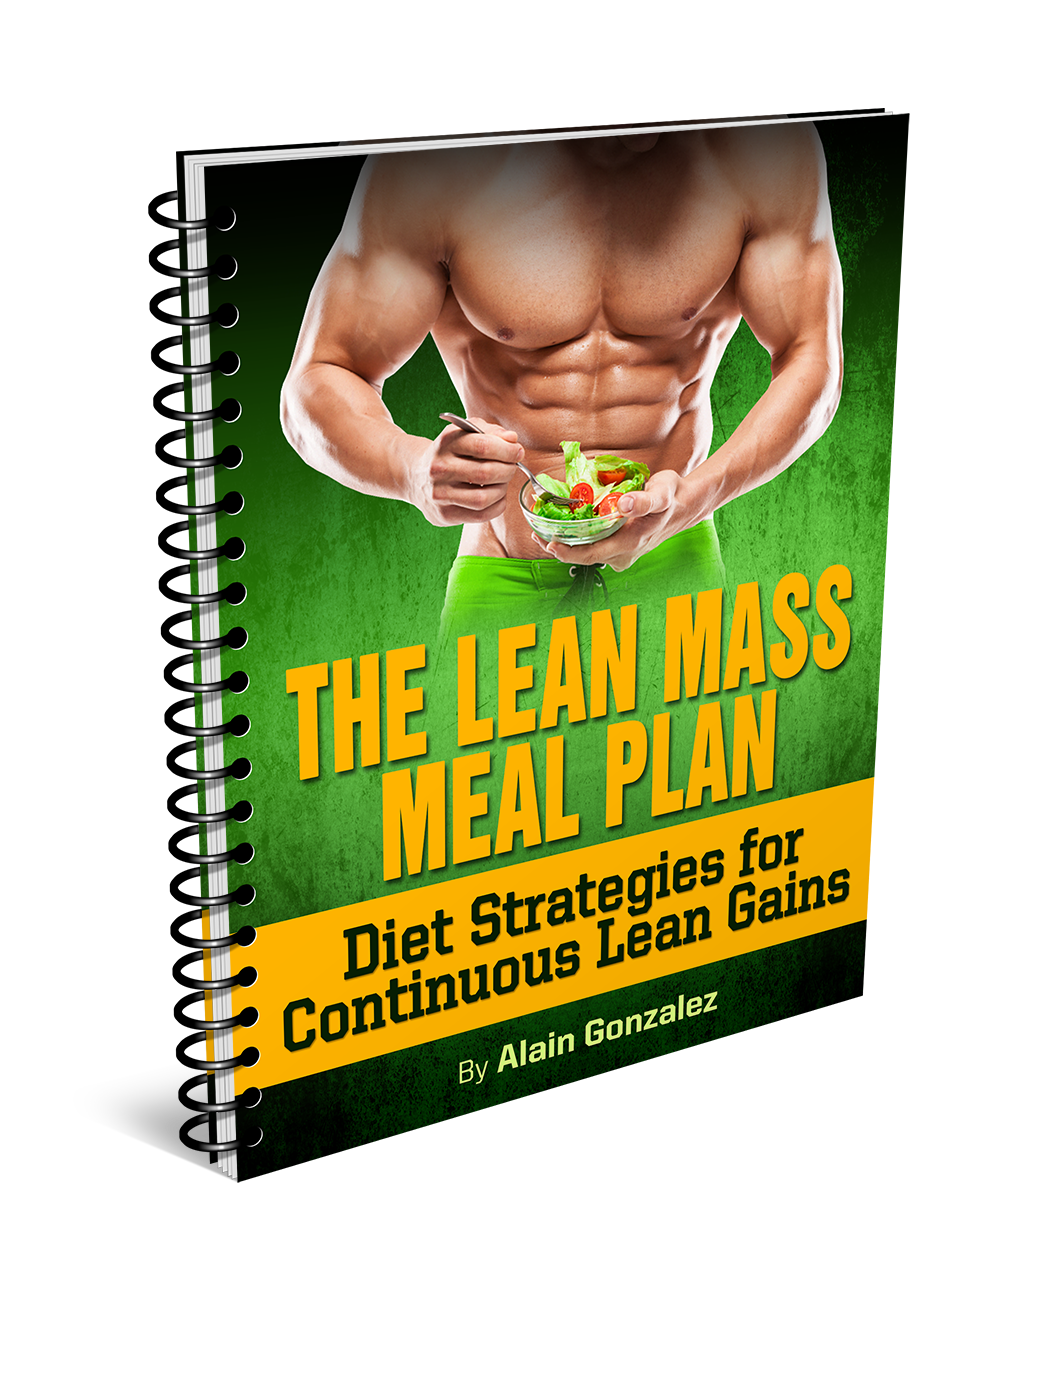 Lean Mass Meal Plan